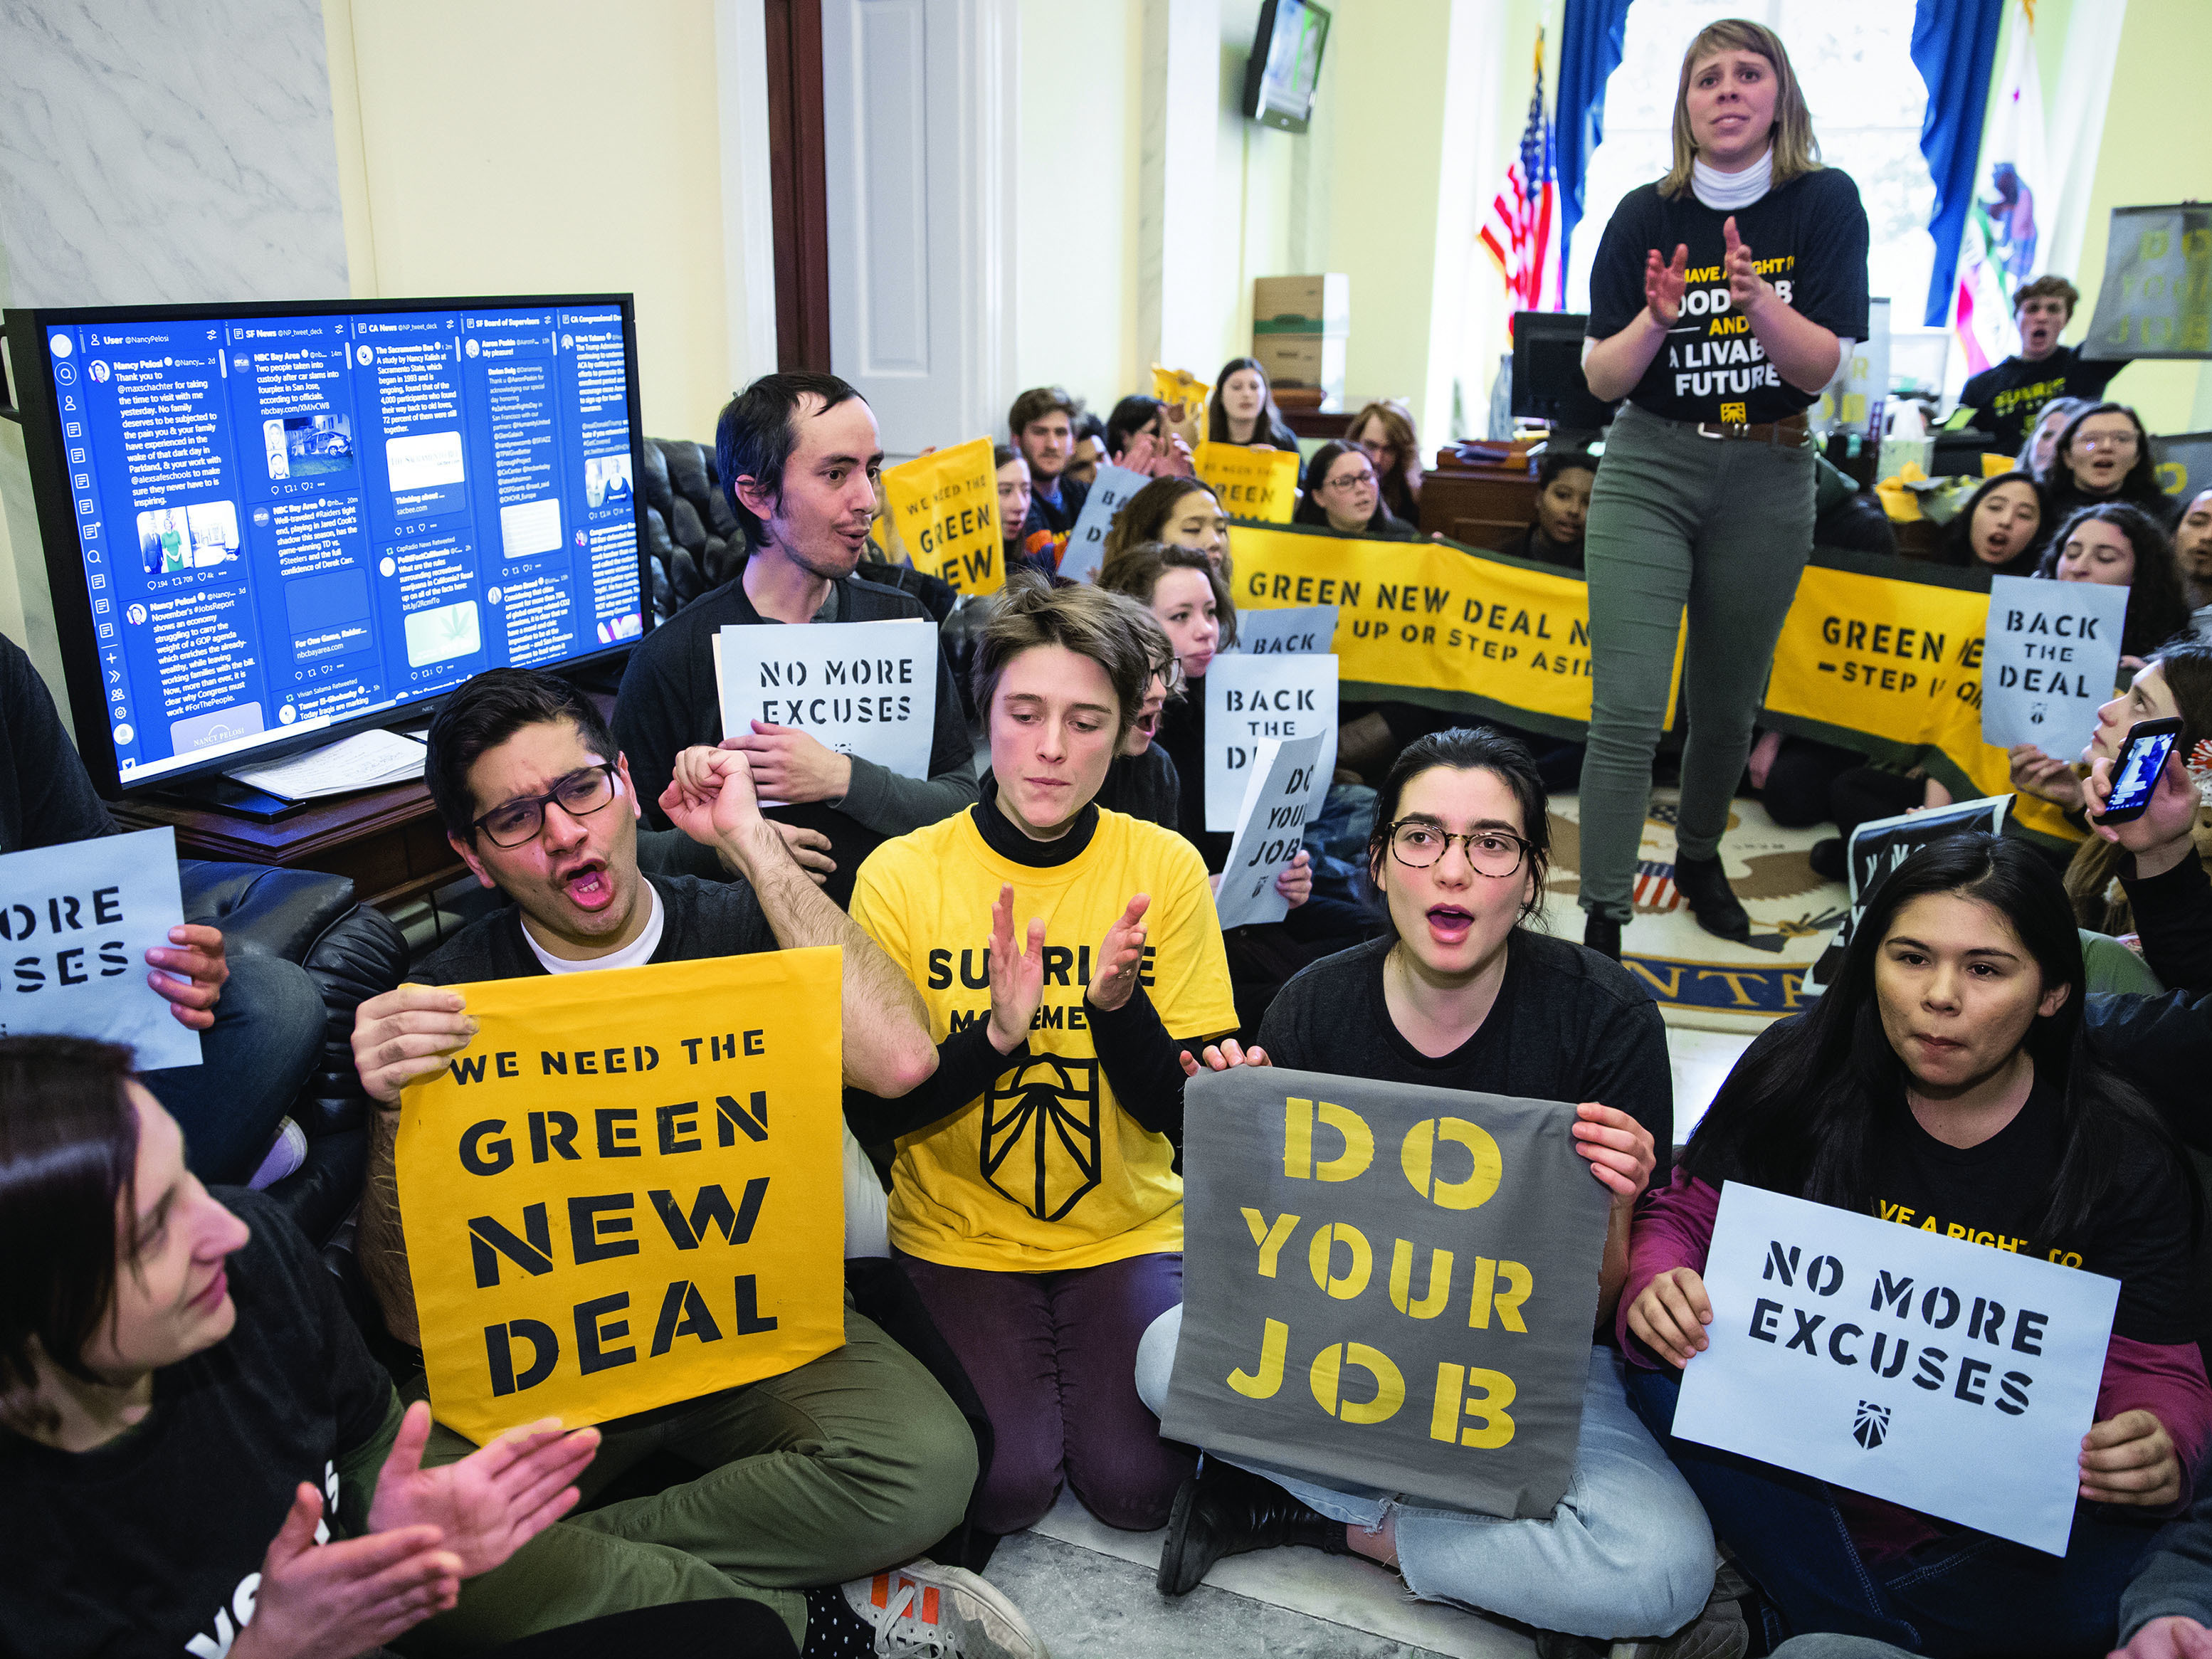 Despite Few Details And Much Doubt, The Green New Deal Generates Enthusiasm